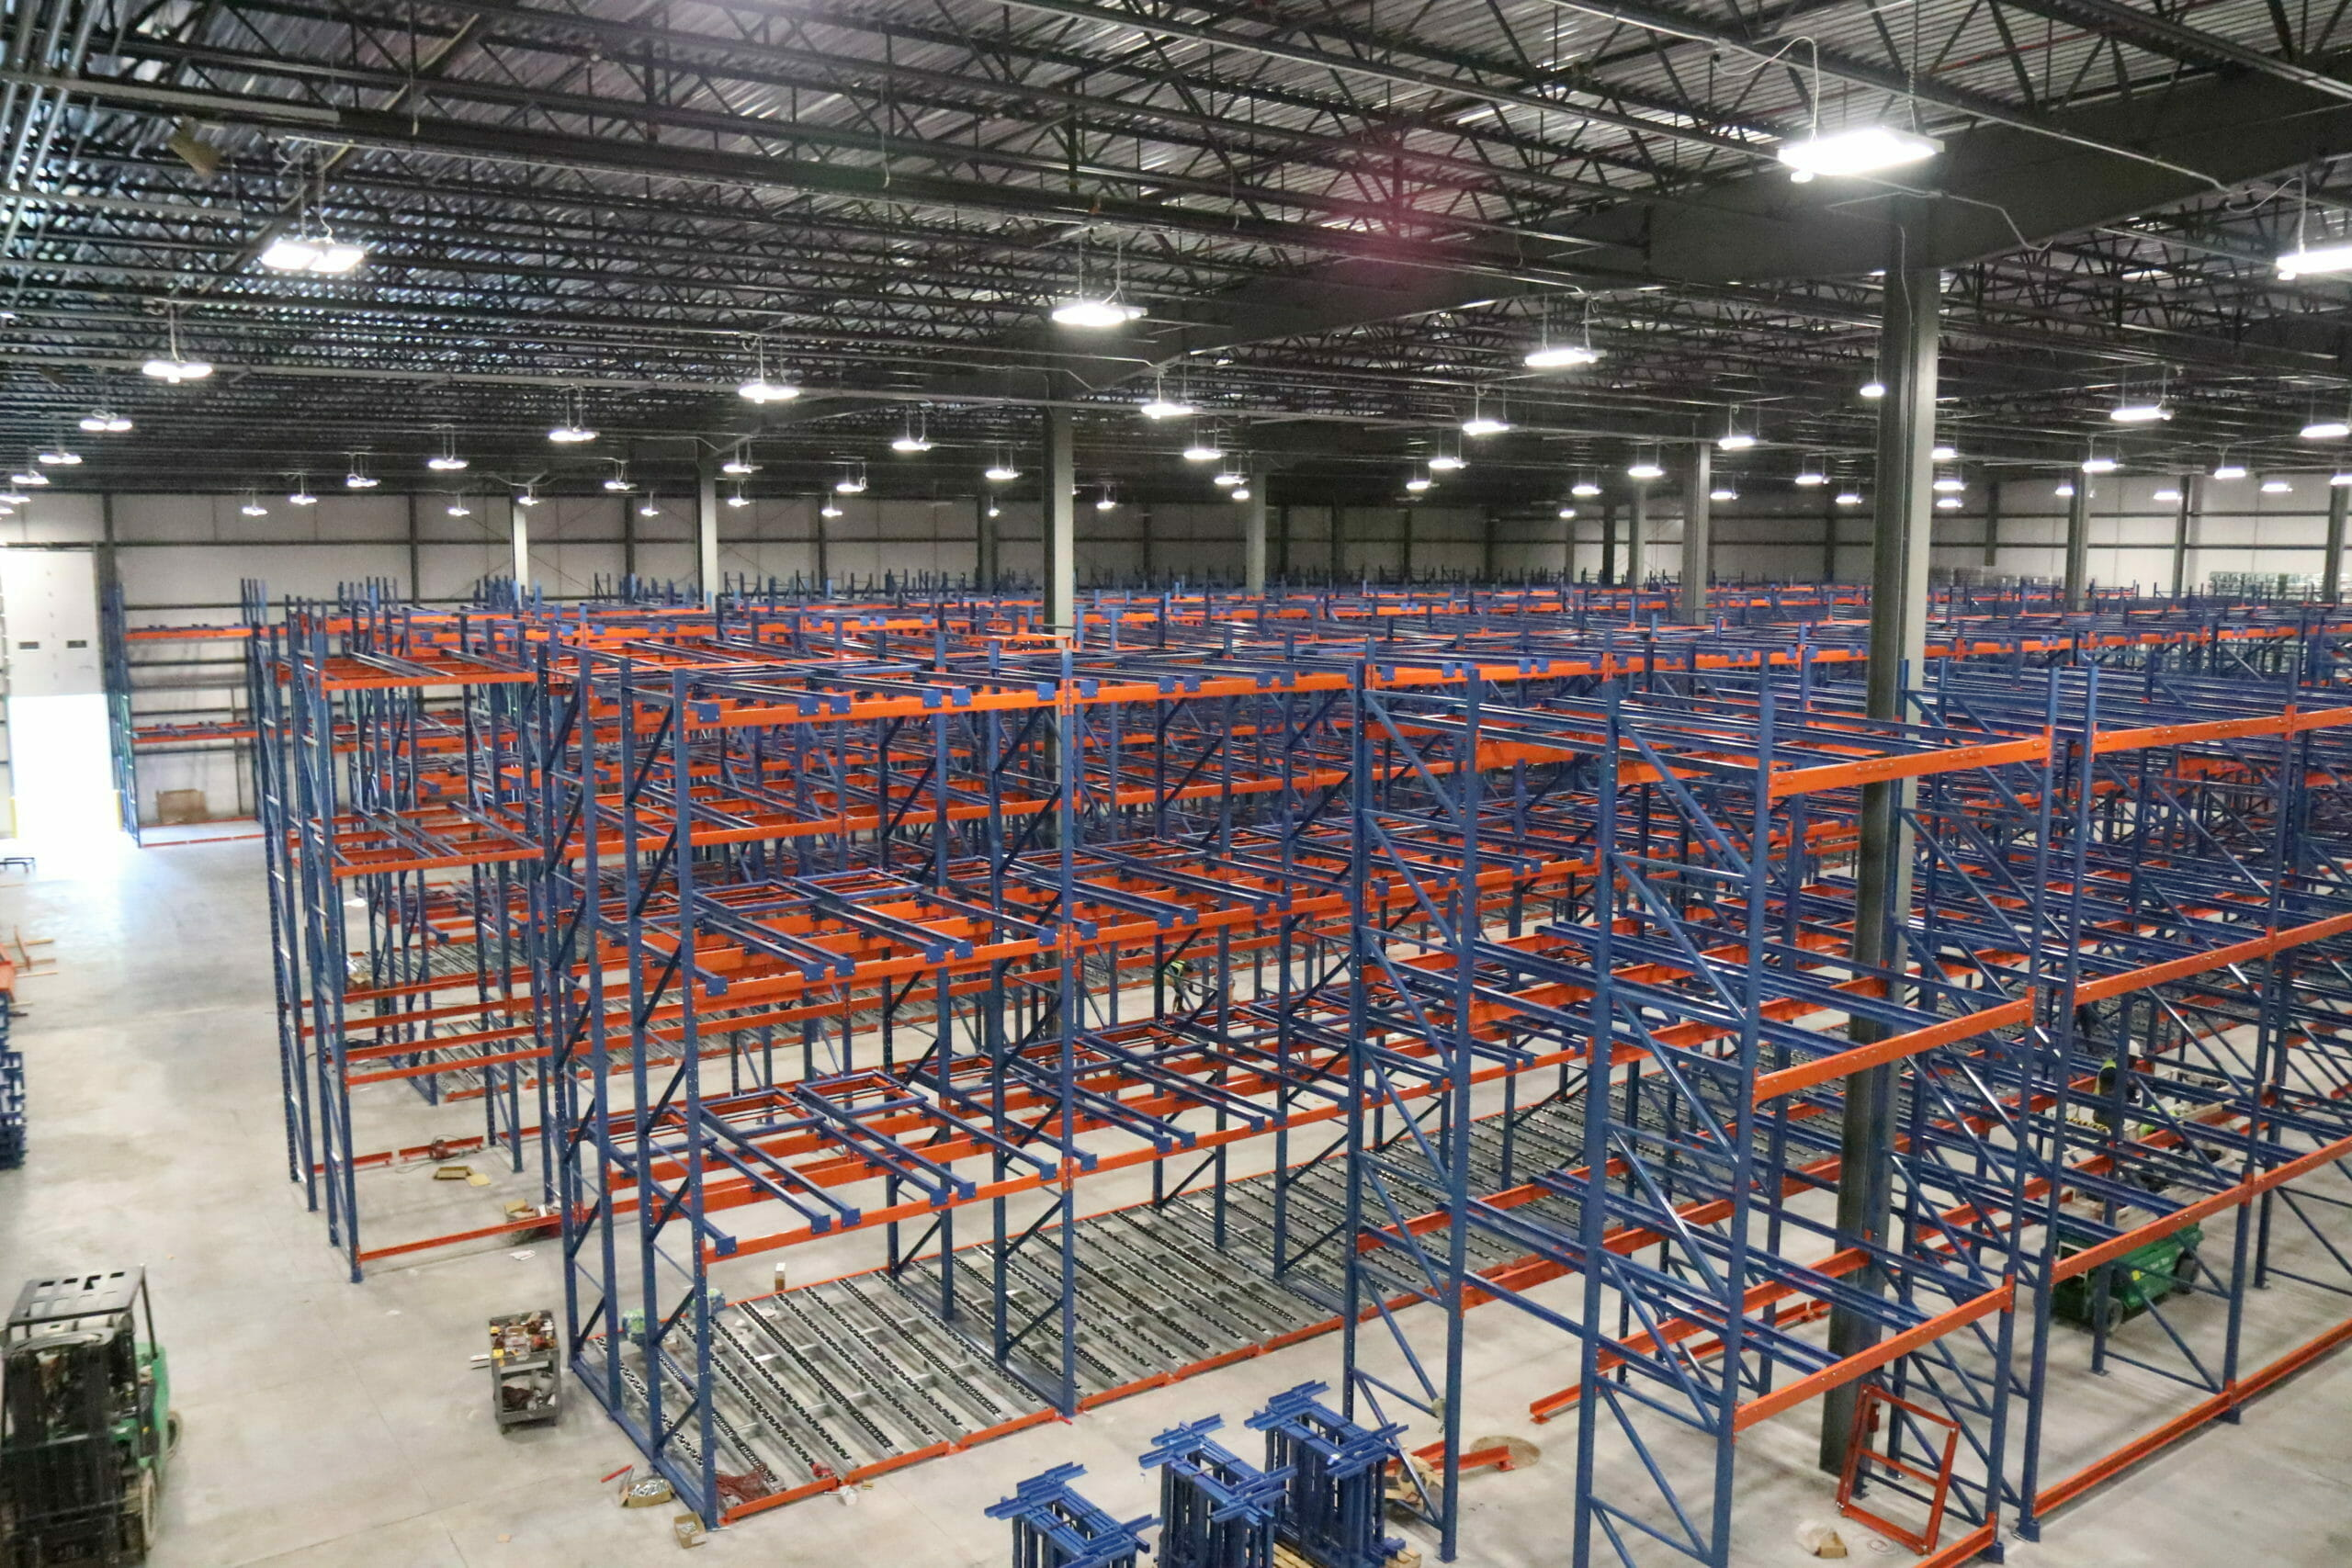 The empty racks in the new plant expansion